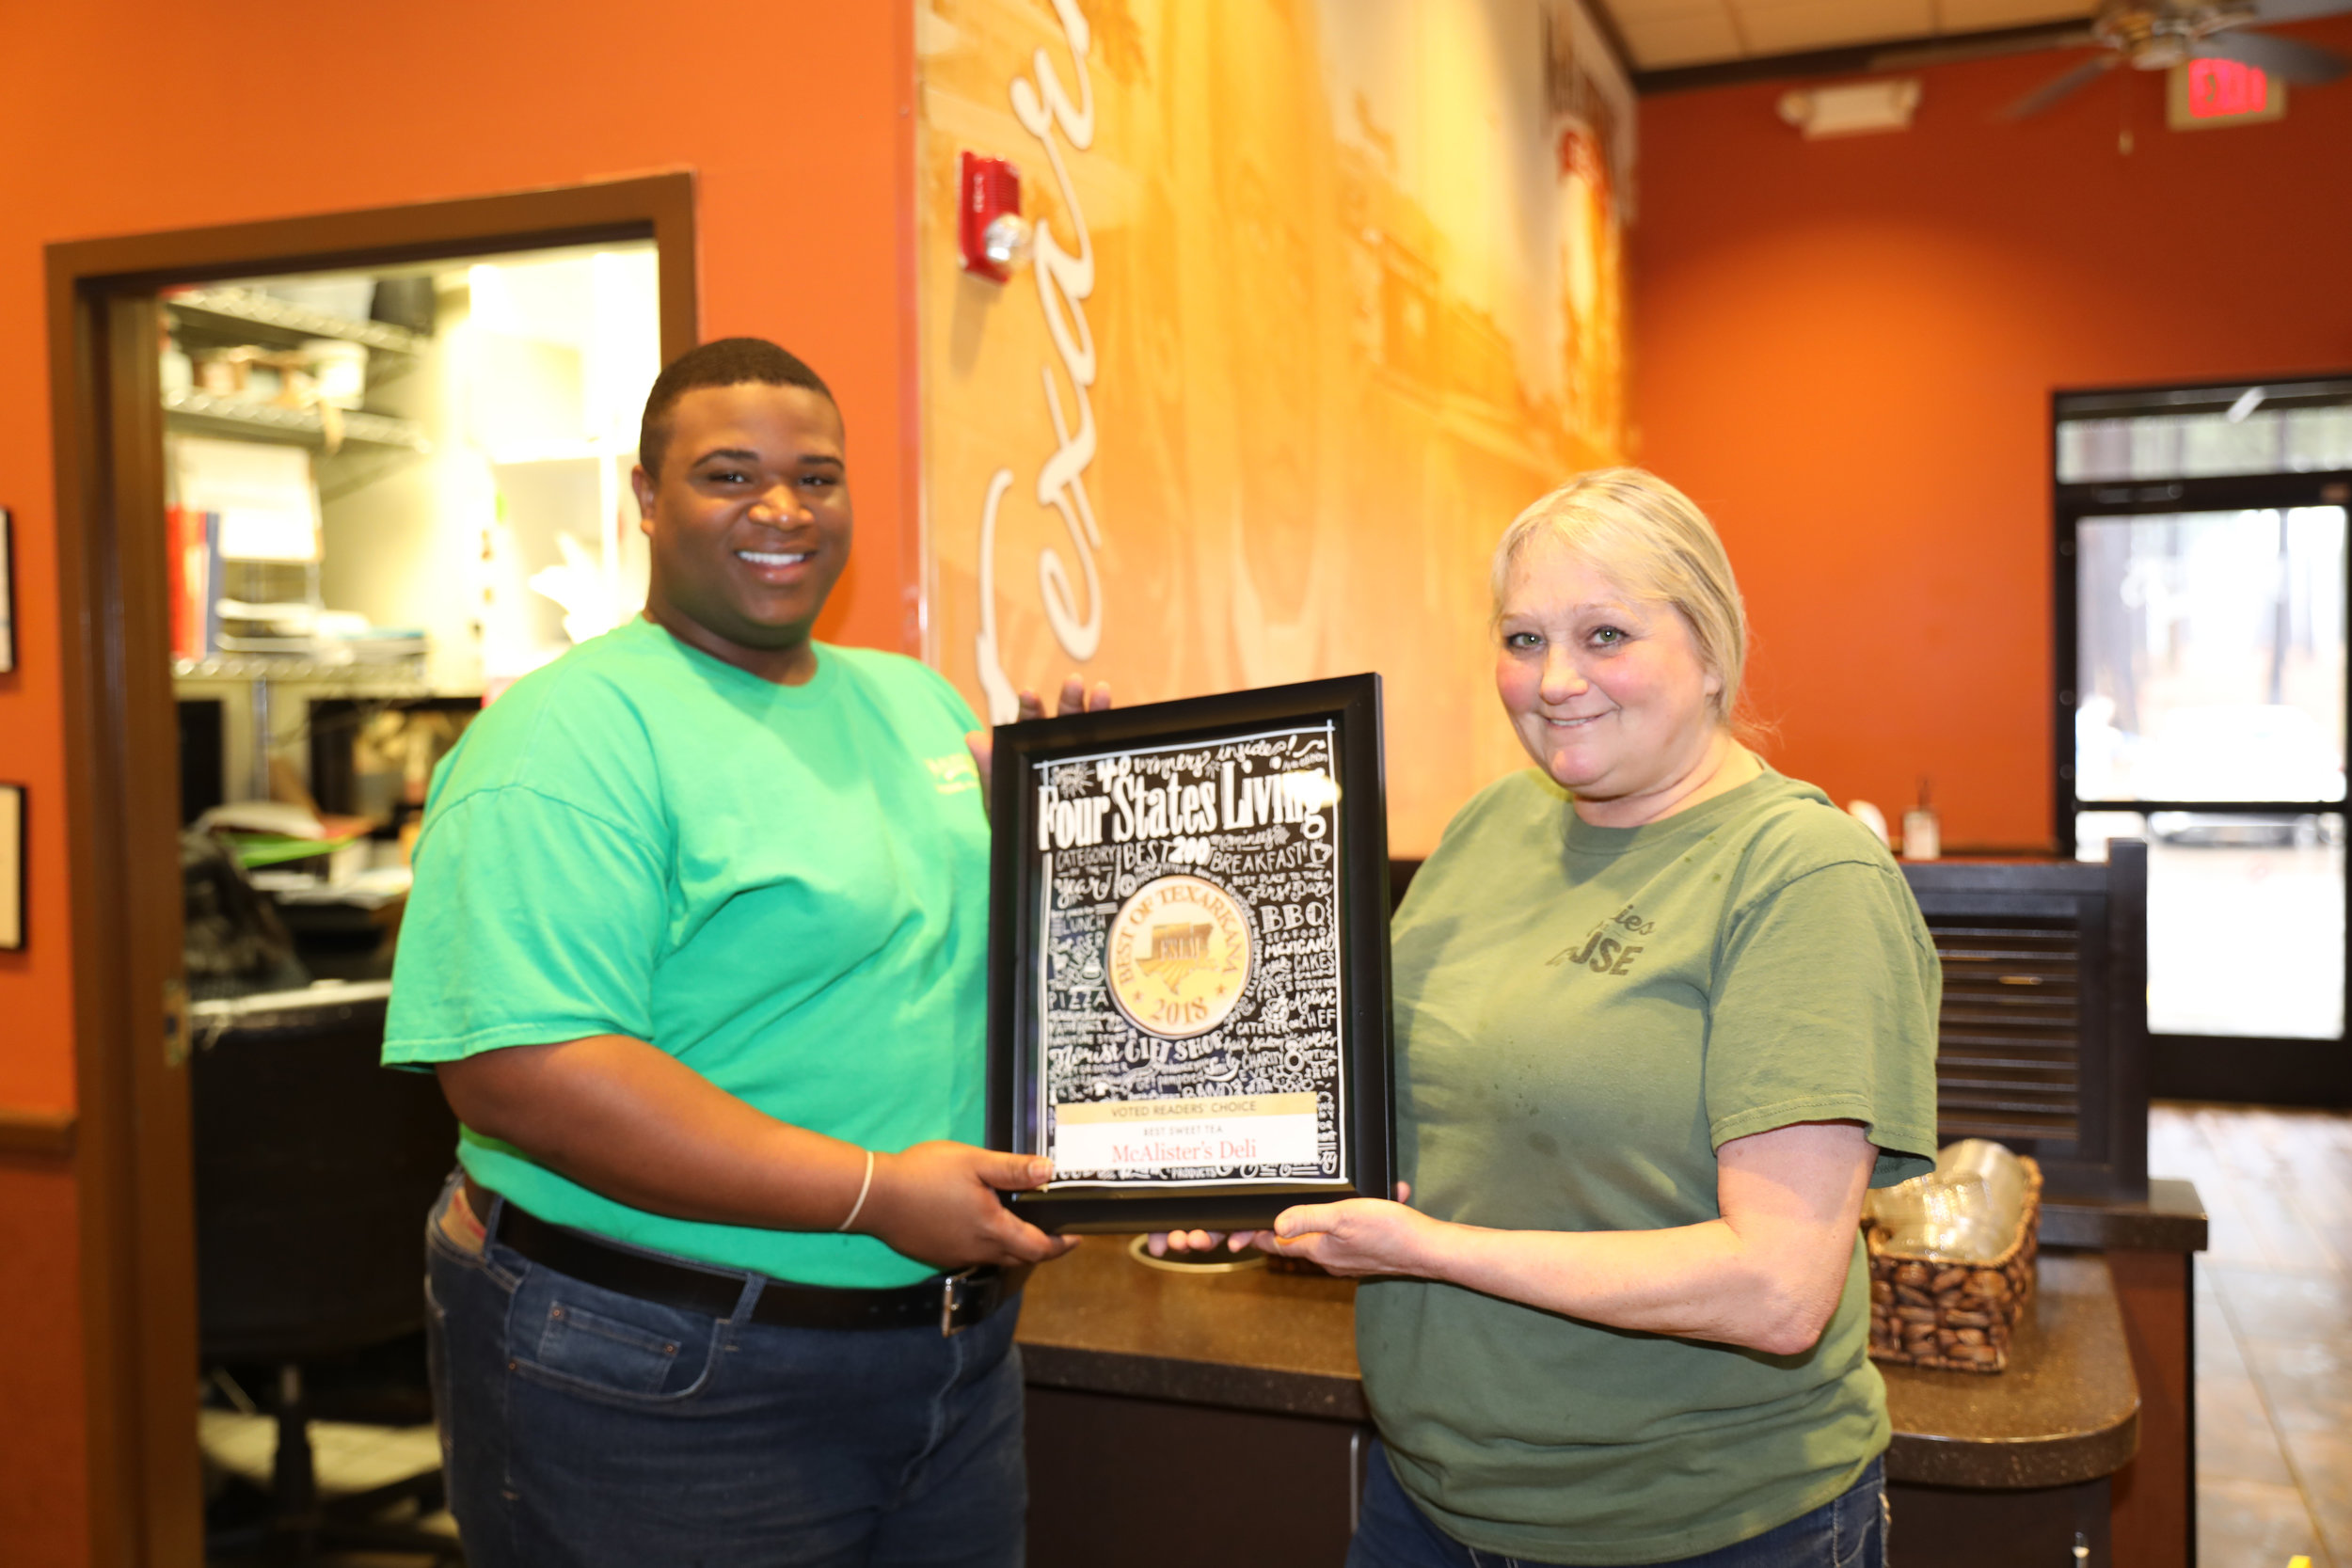 MCALISTER'S DELI – Qyuan Williams and Connie Marsh